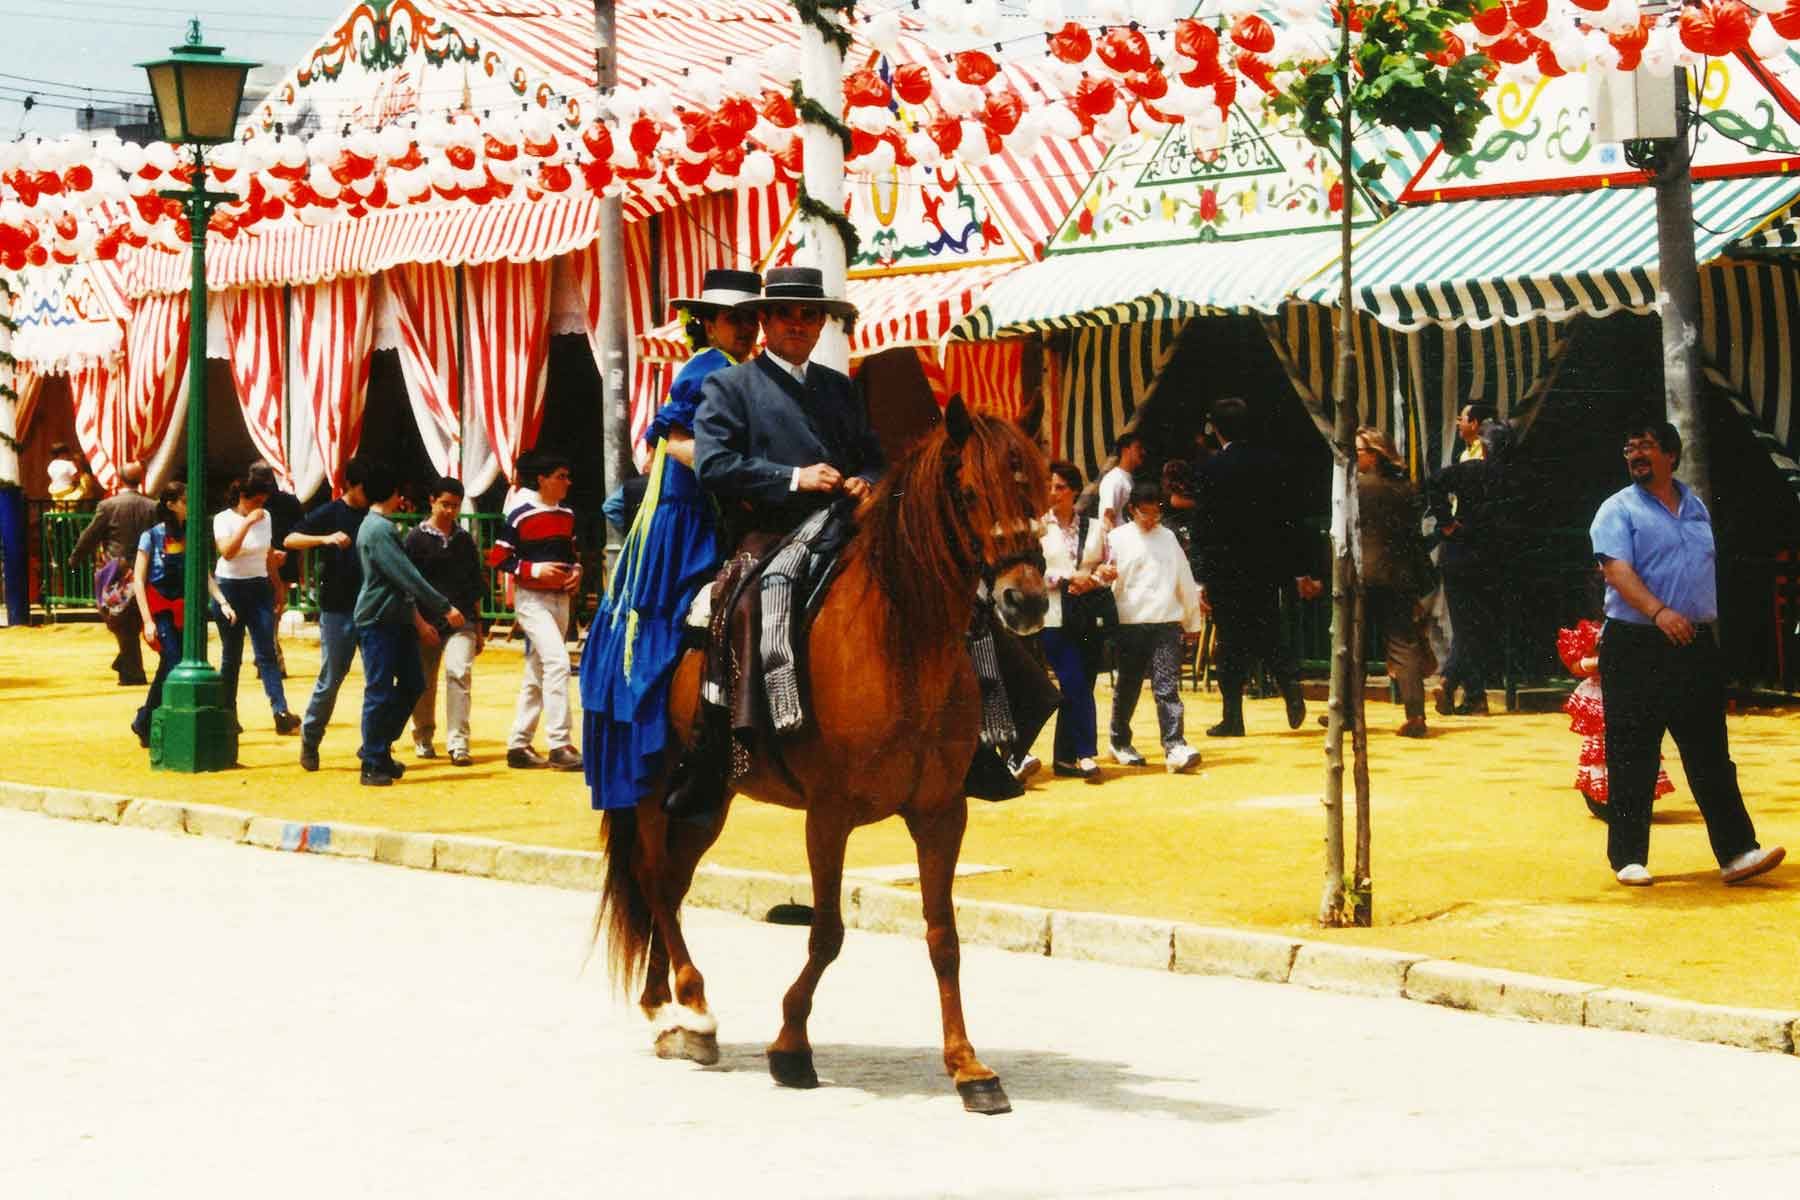 Seville Fair 1998 - Study Abroad Journal - College Consortium International Studies - CCIS - Steven Andrew Martin PhD